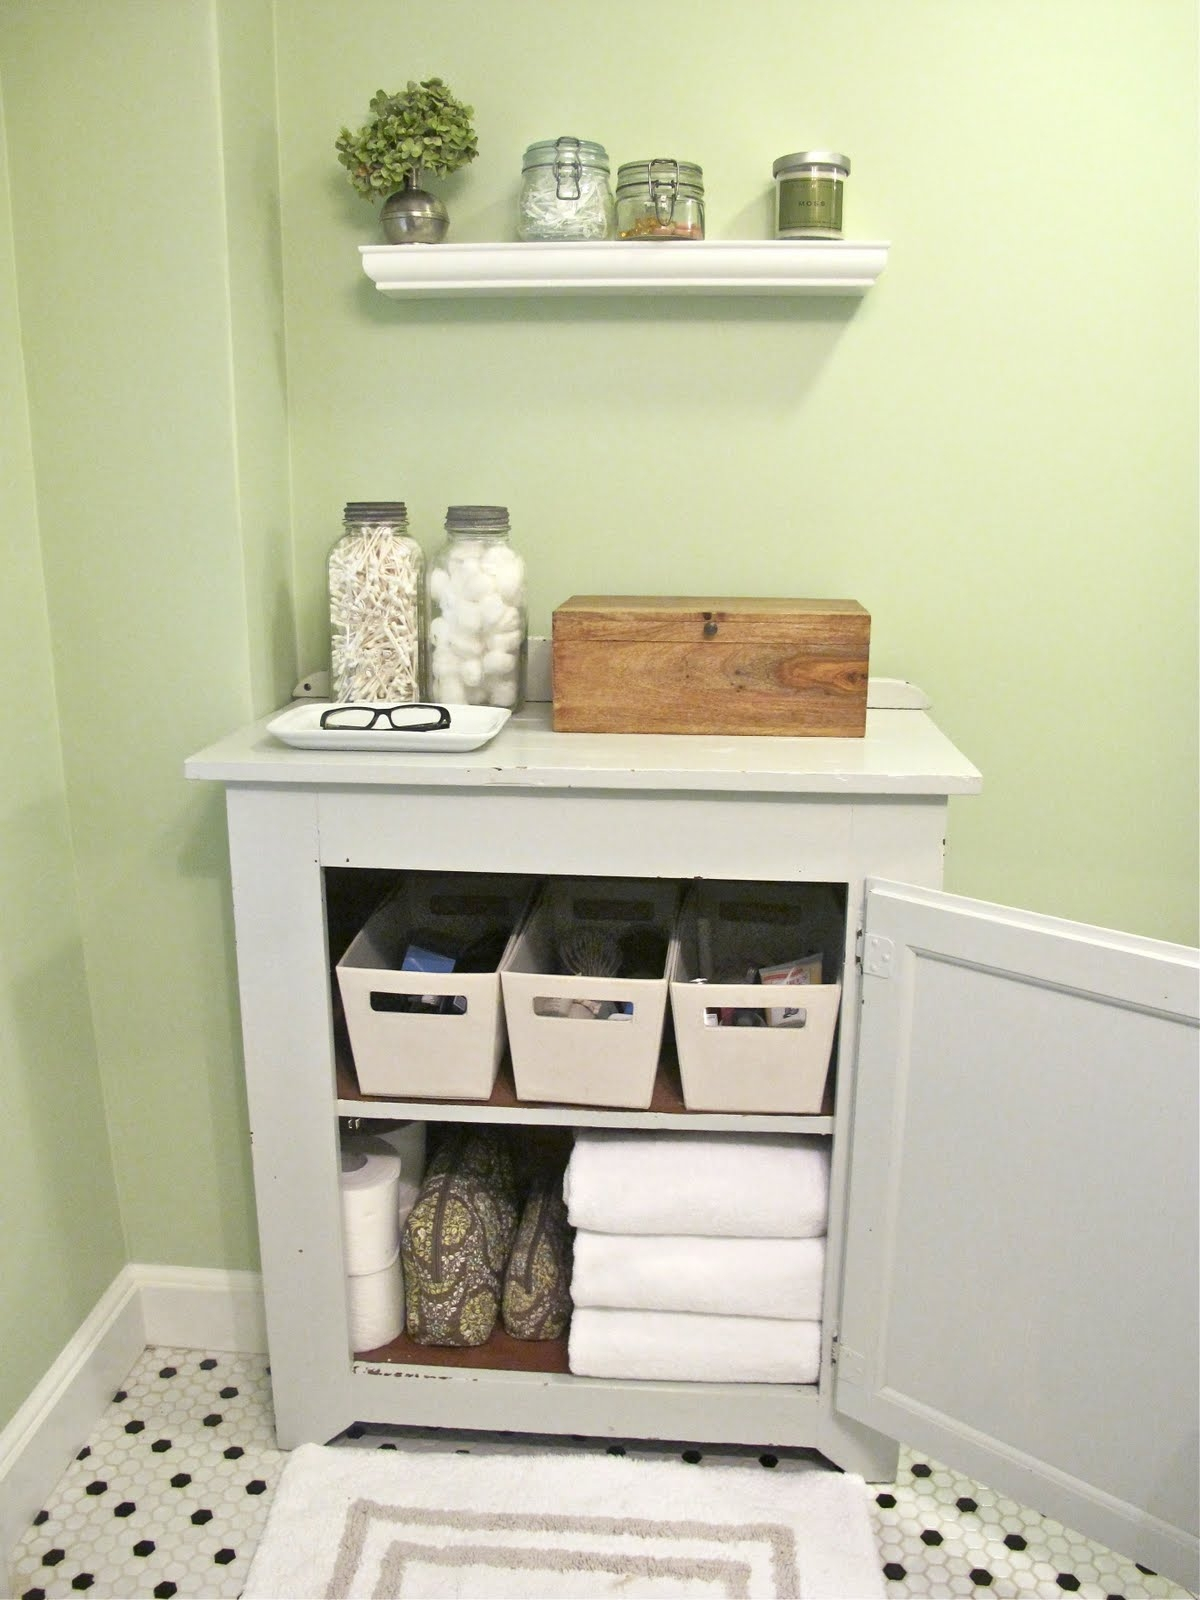 Storage Containers For Bathroom Cabinets Storage Cabinet in proportions 1200 X 1600